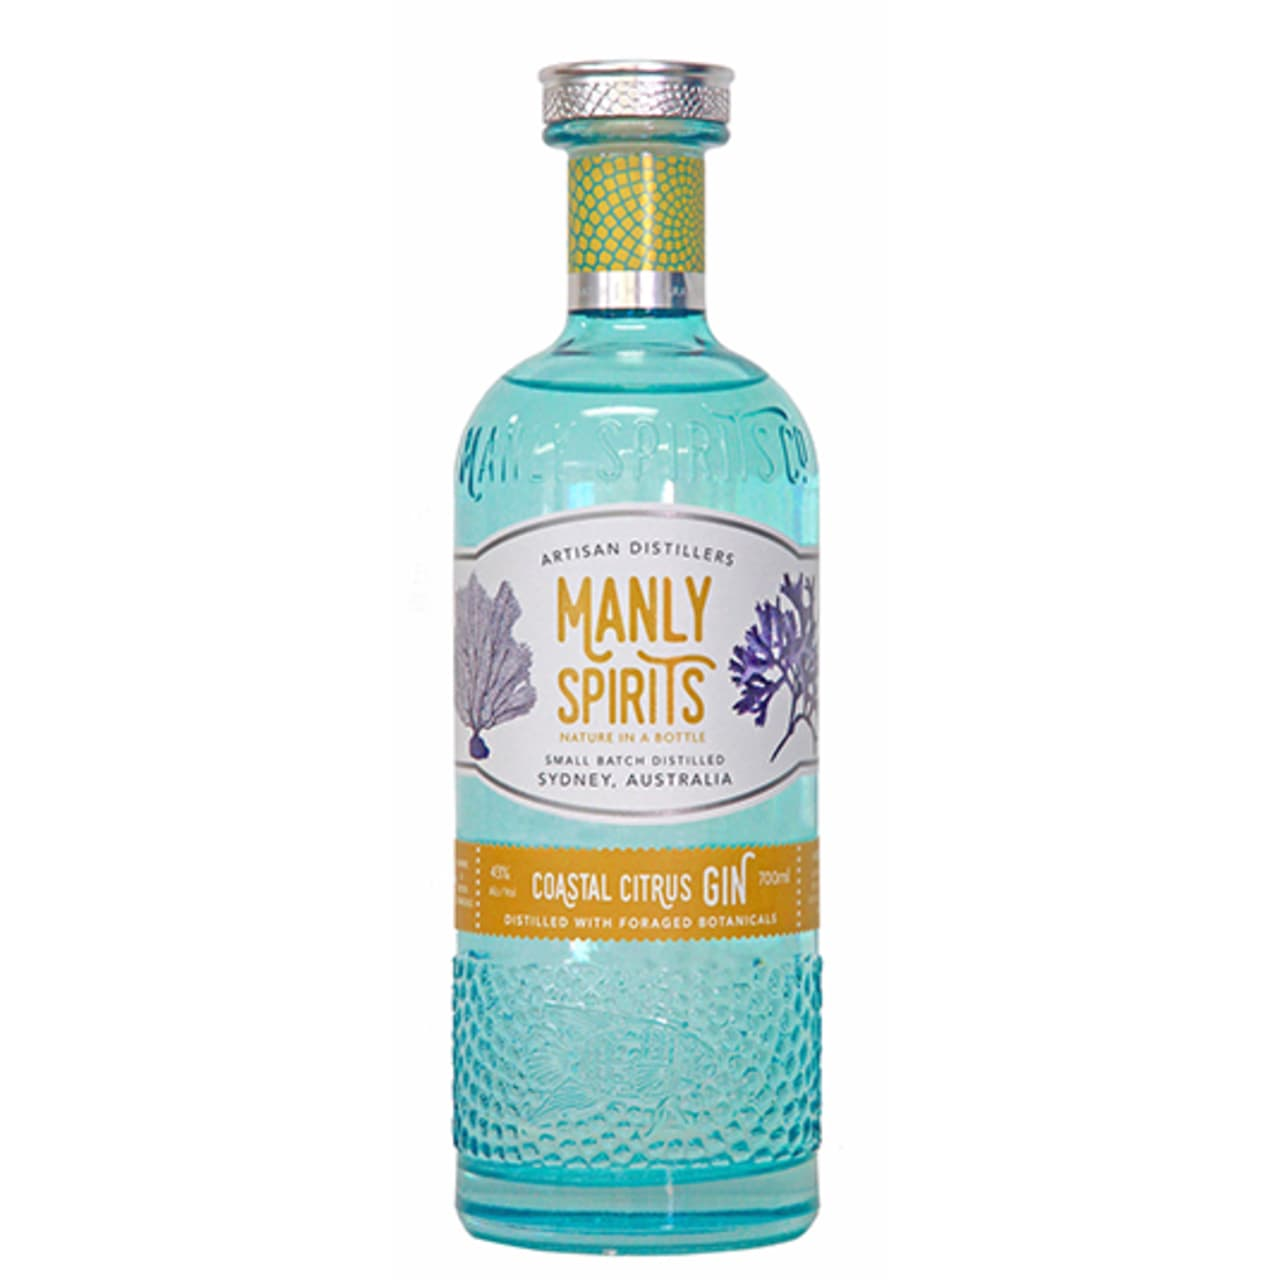 Product Image - Manly Spirits Co. Coastal Citrus Gin